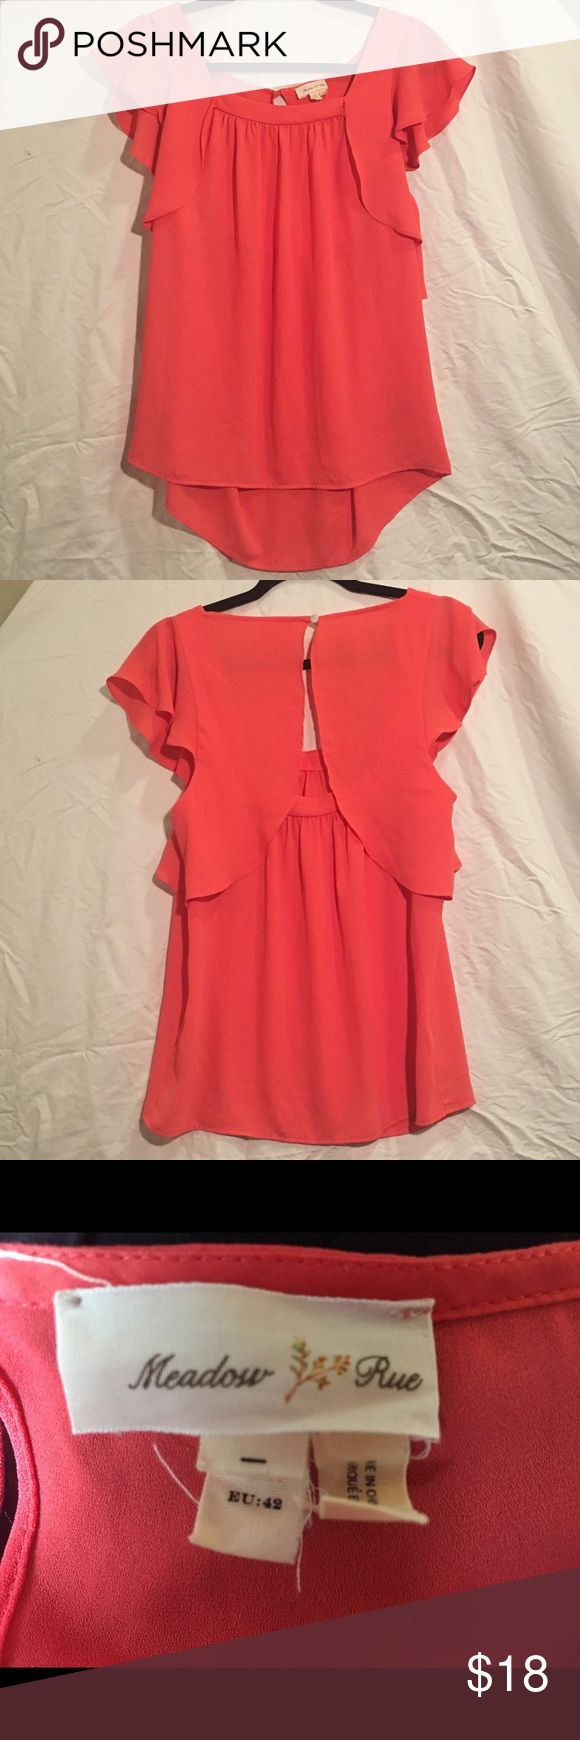 "Anthropologie Coral Blouse This Meadow Rue flowy flutter sleeve coral blouse is a size 10. It has been gently worn and is in good condition. Bust is 38"" and it is 26"" long. Anthropologie Tops Blouses"